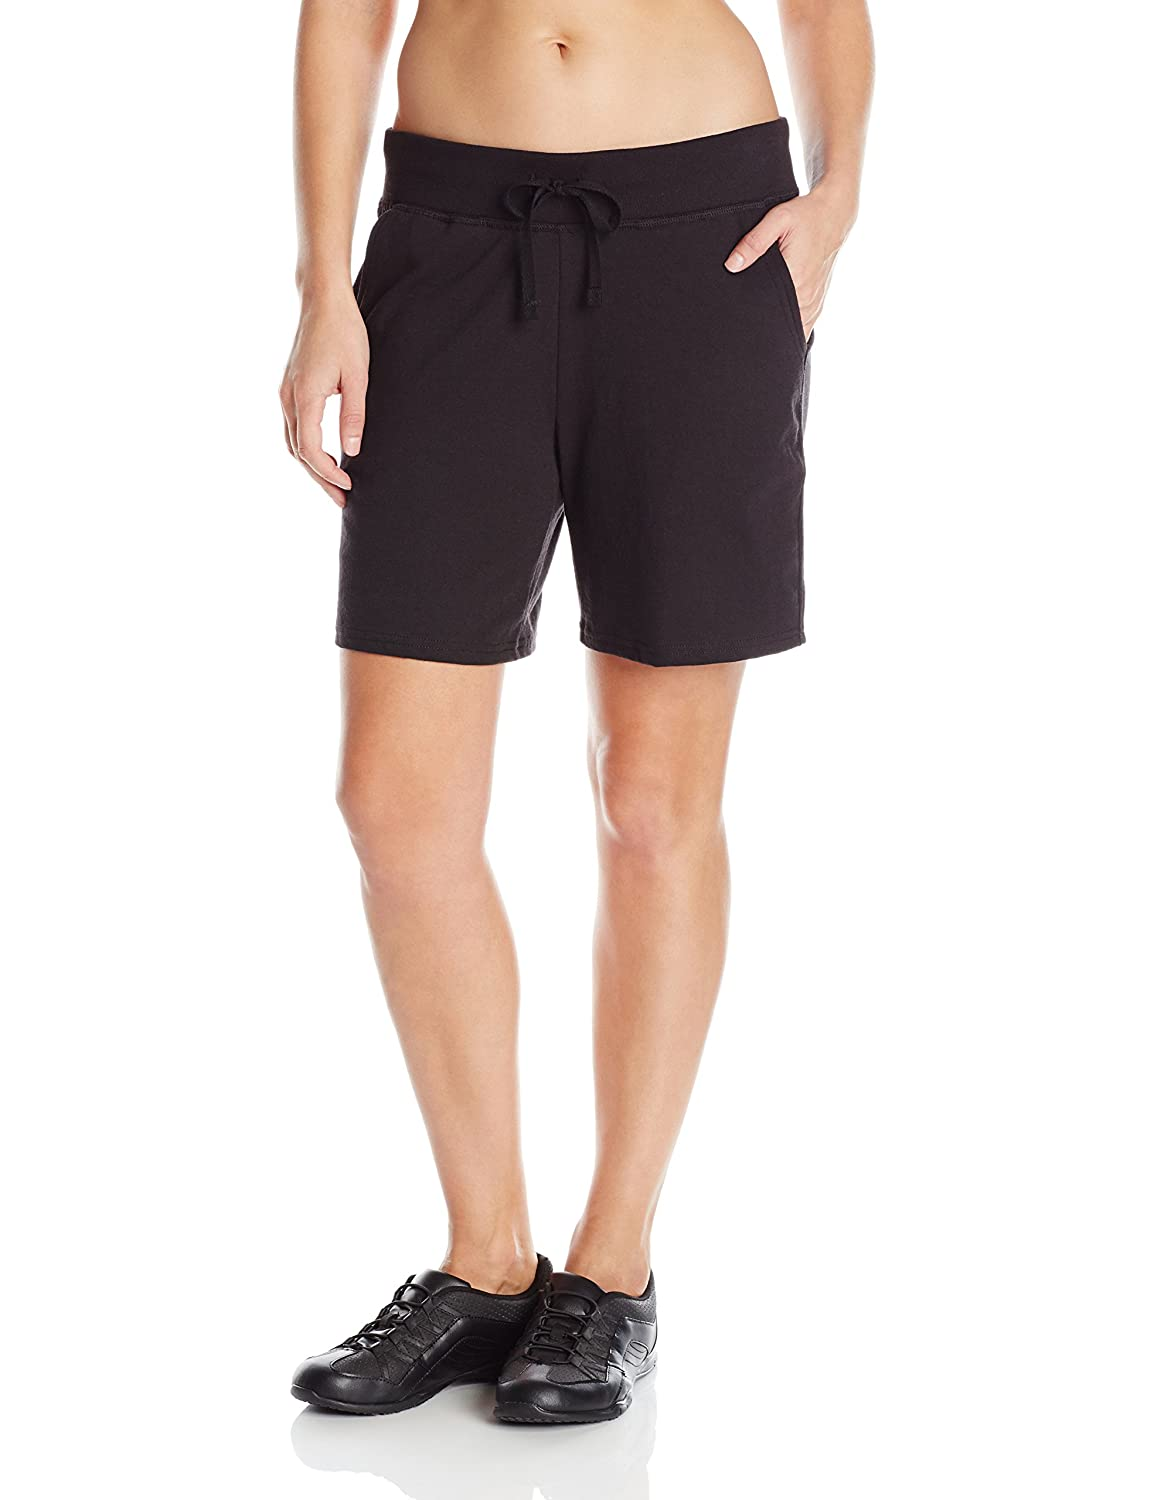 TALLA L. Hanes Mens Jersey Pocket Short (O9264)